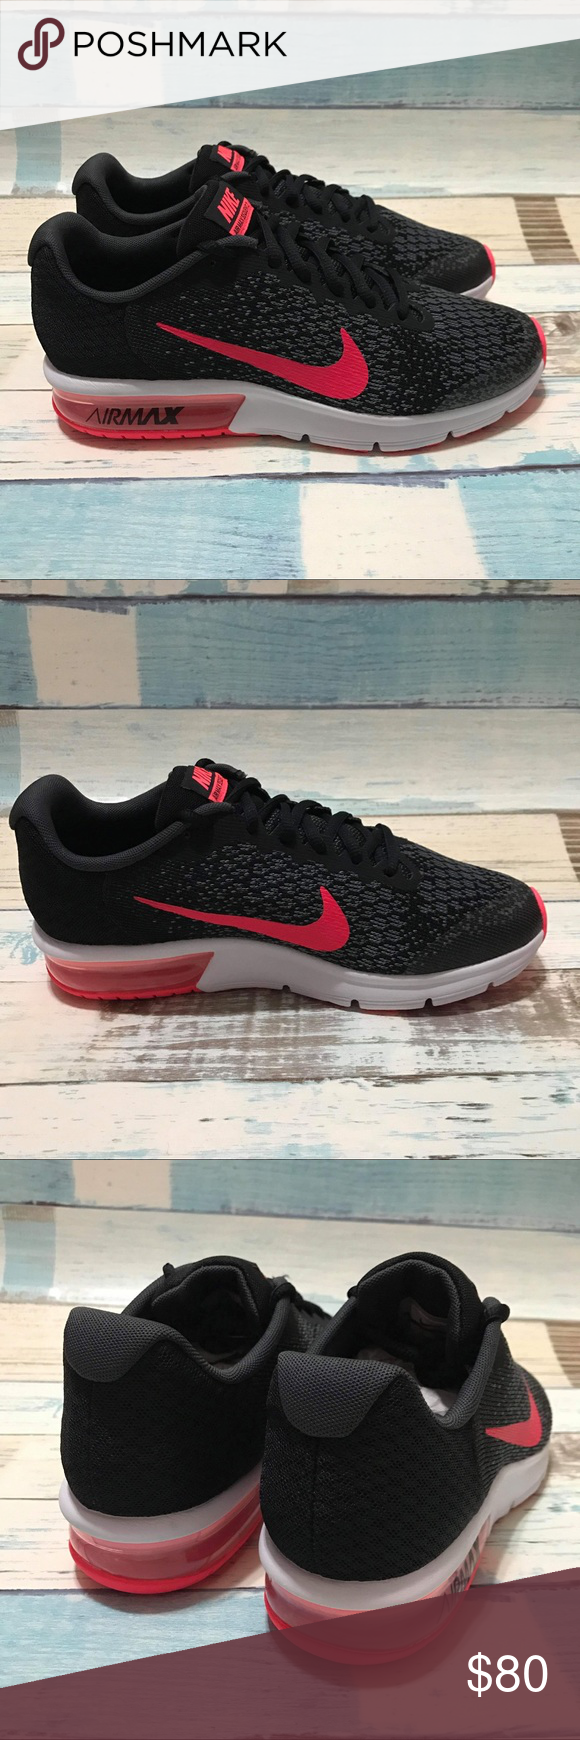 16aaaae0bb27ed Spotted while shopping on Poshmark  NEW Nike Air Max Sequent 2 Black Racer  Pink!  poshmark  fashion  shopping  style  Nike  Shoes